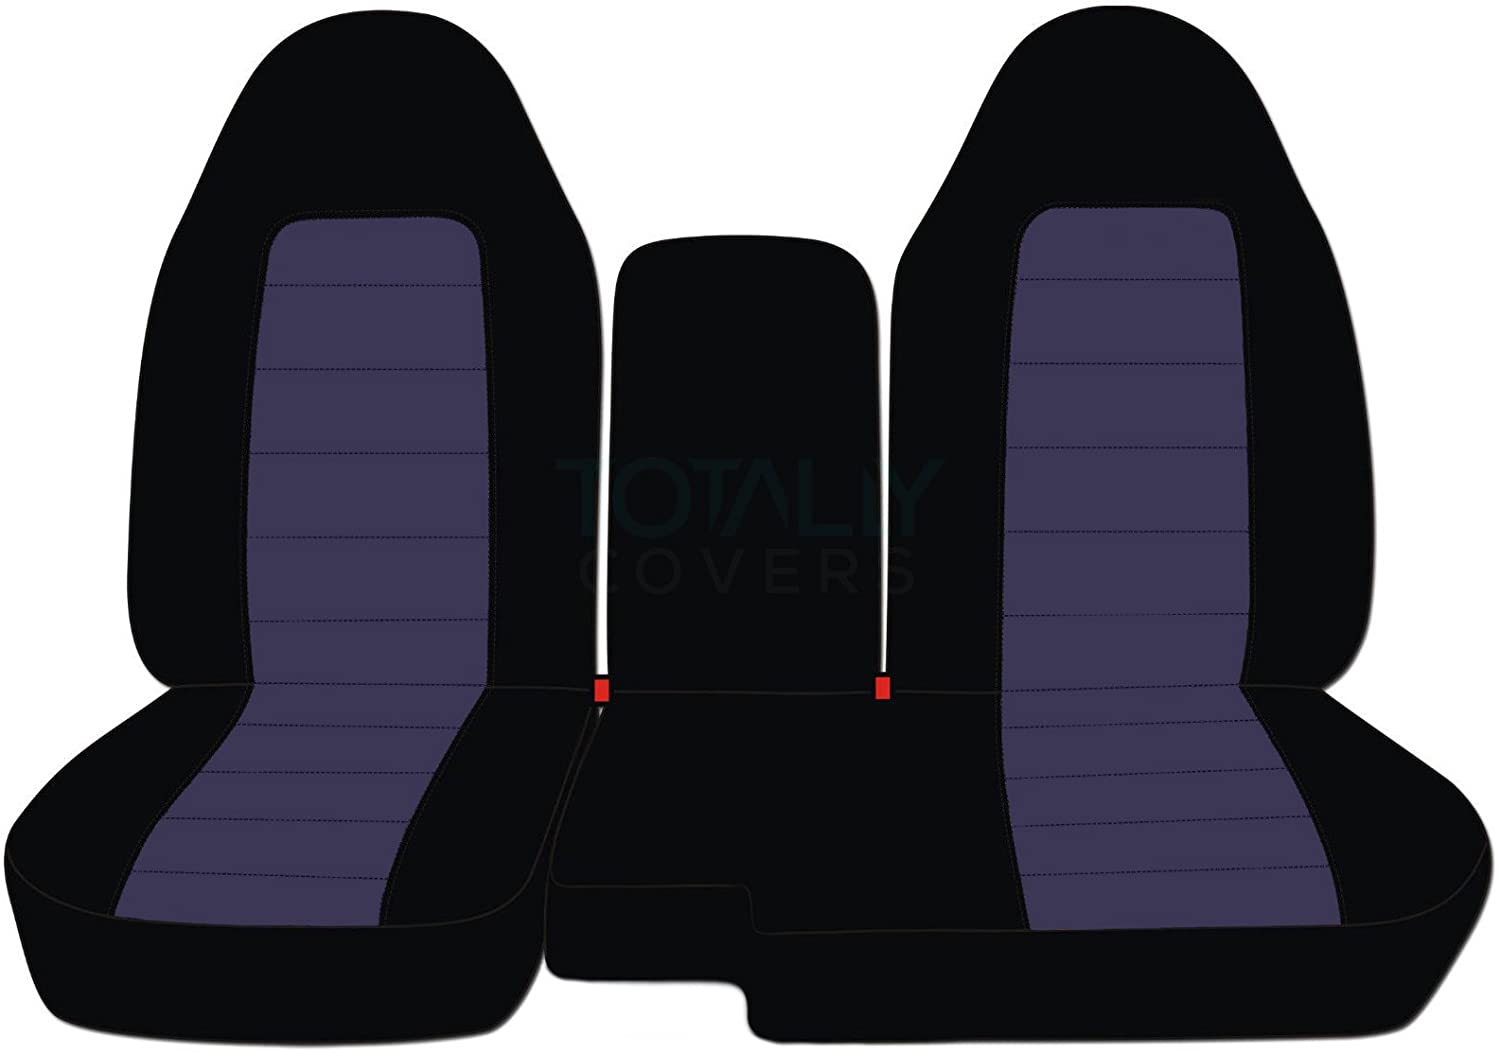 Totally Covers Compatible with 1991-1997 Ford Ranger/Explorer Two-Tone Truck/SUV Seat Covers (60/40 Split Bench) w Center Armrest/Console Cover: Black and Blue Gray (21 Colors)